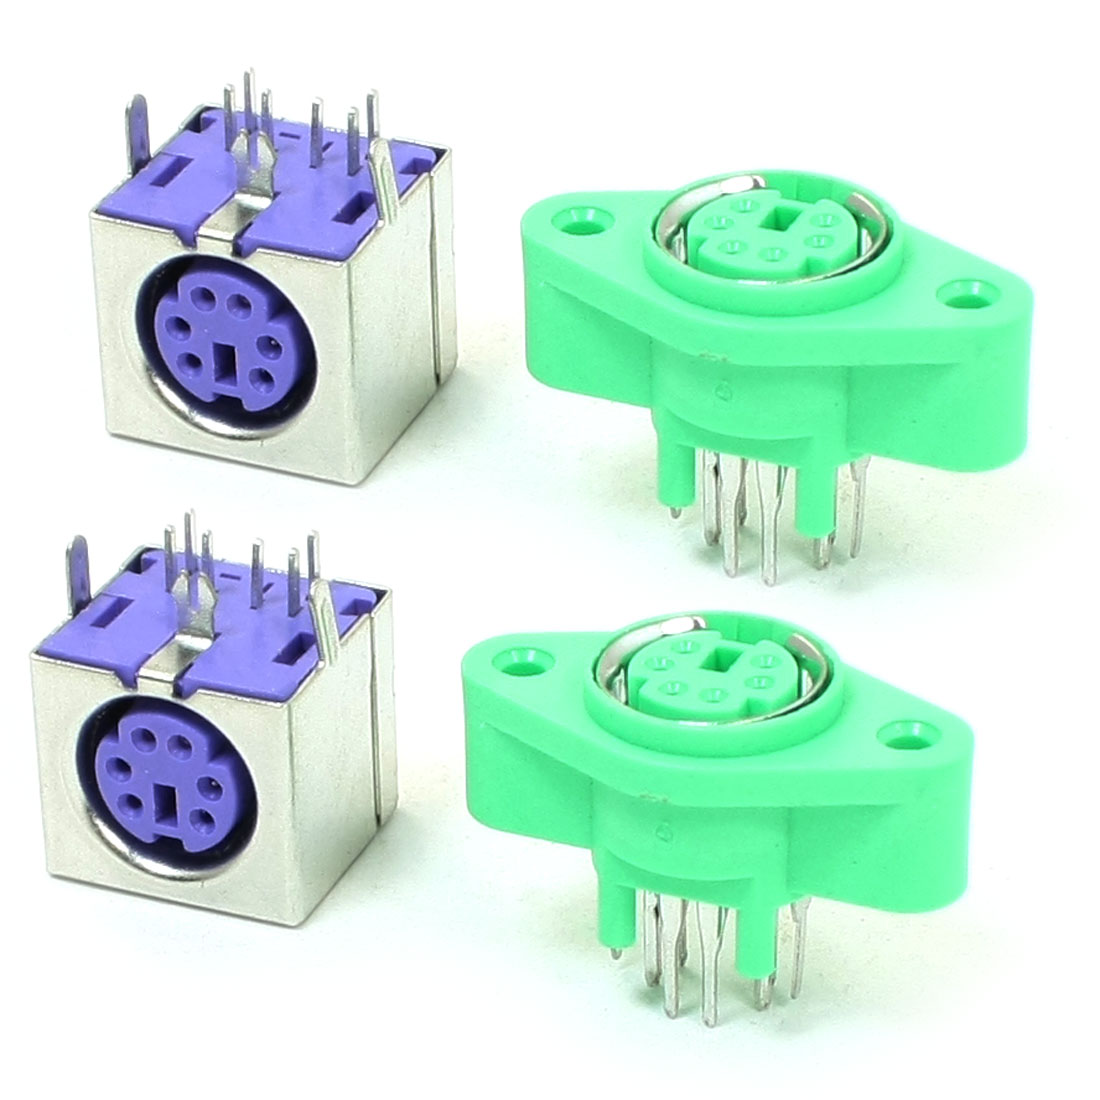 4 Pcs PCB Mount 6 Pin Female S-video Mini Din Sockets Green Purple